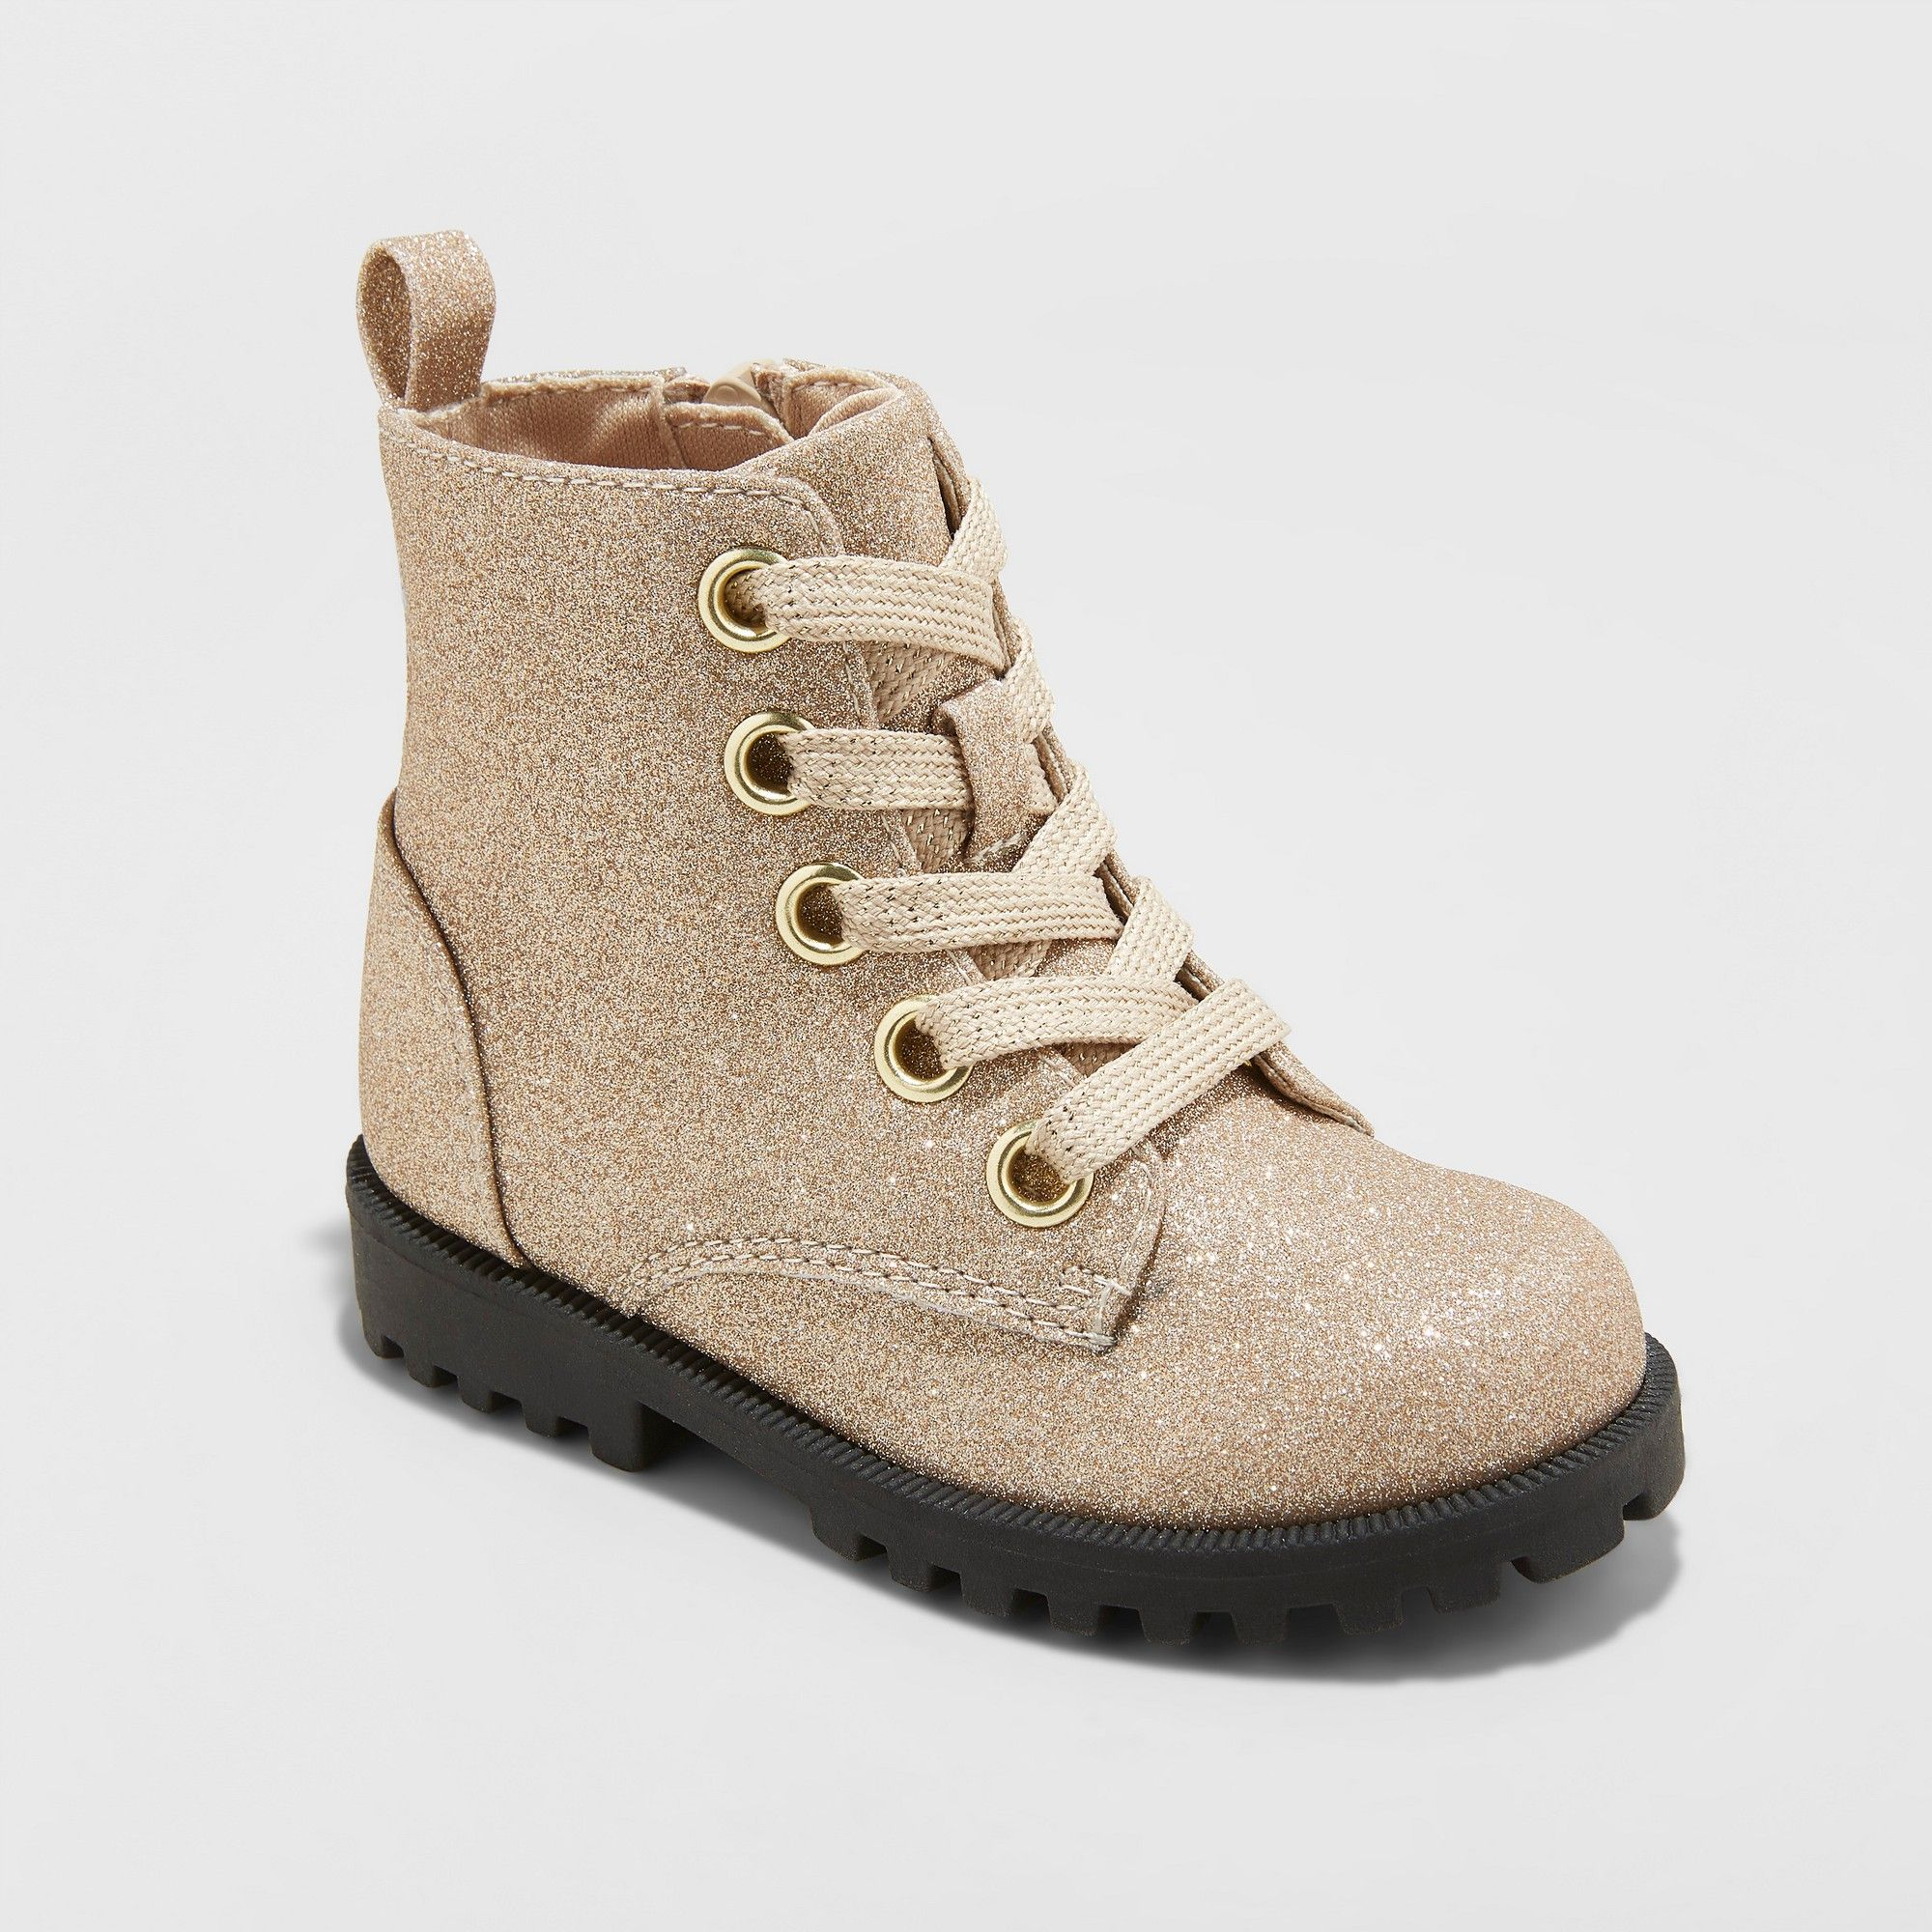 7144d122342a Toddler Girls  Arabella Glitter Ankle Boots - Cat   Jack Gold 9 in ...